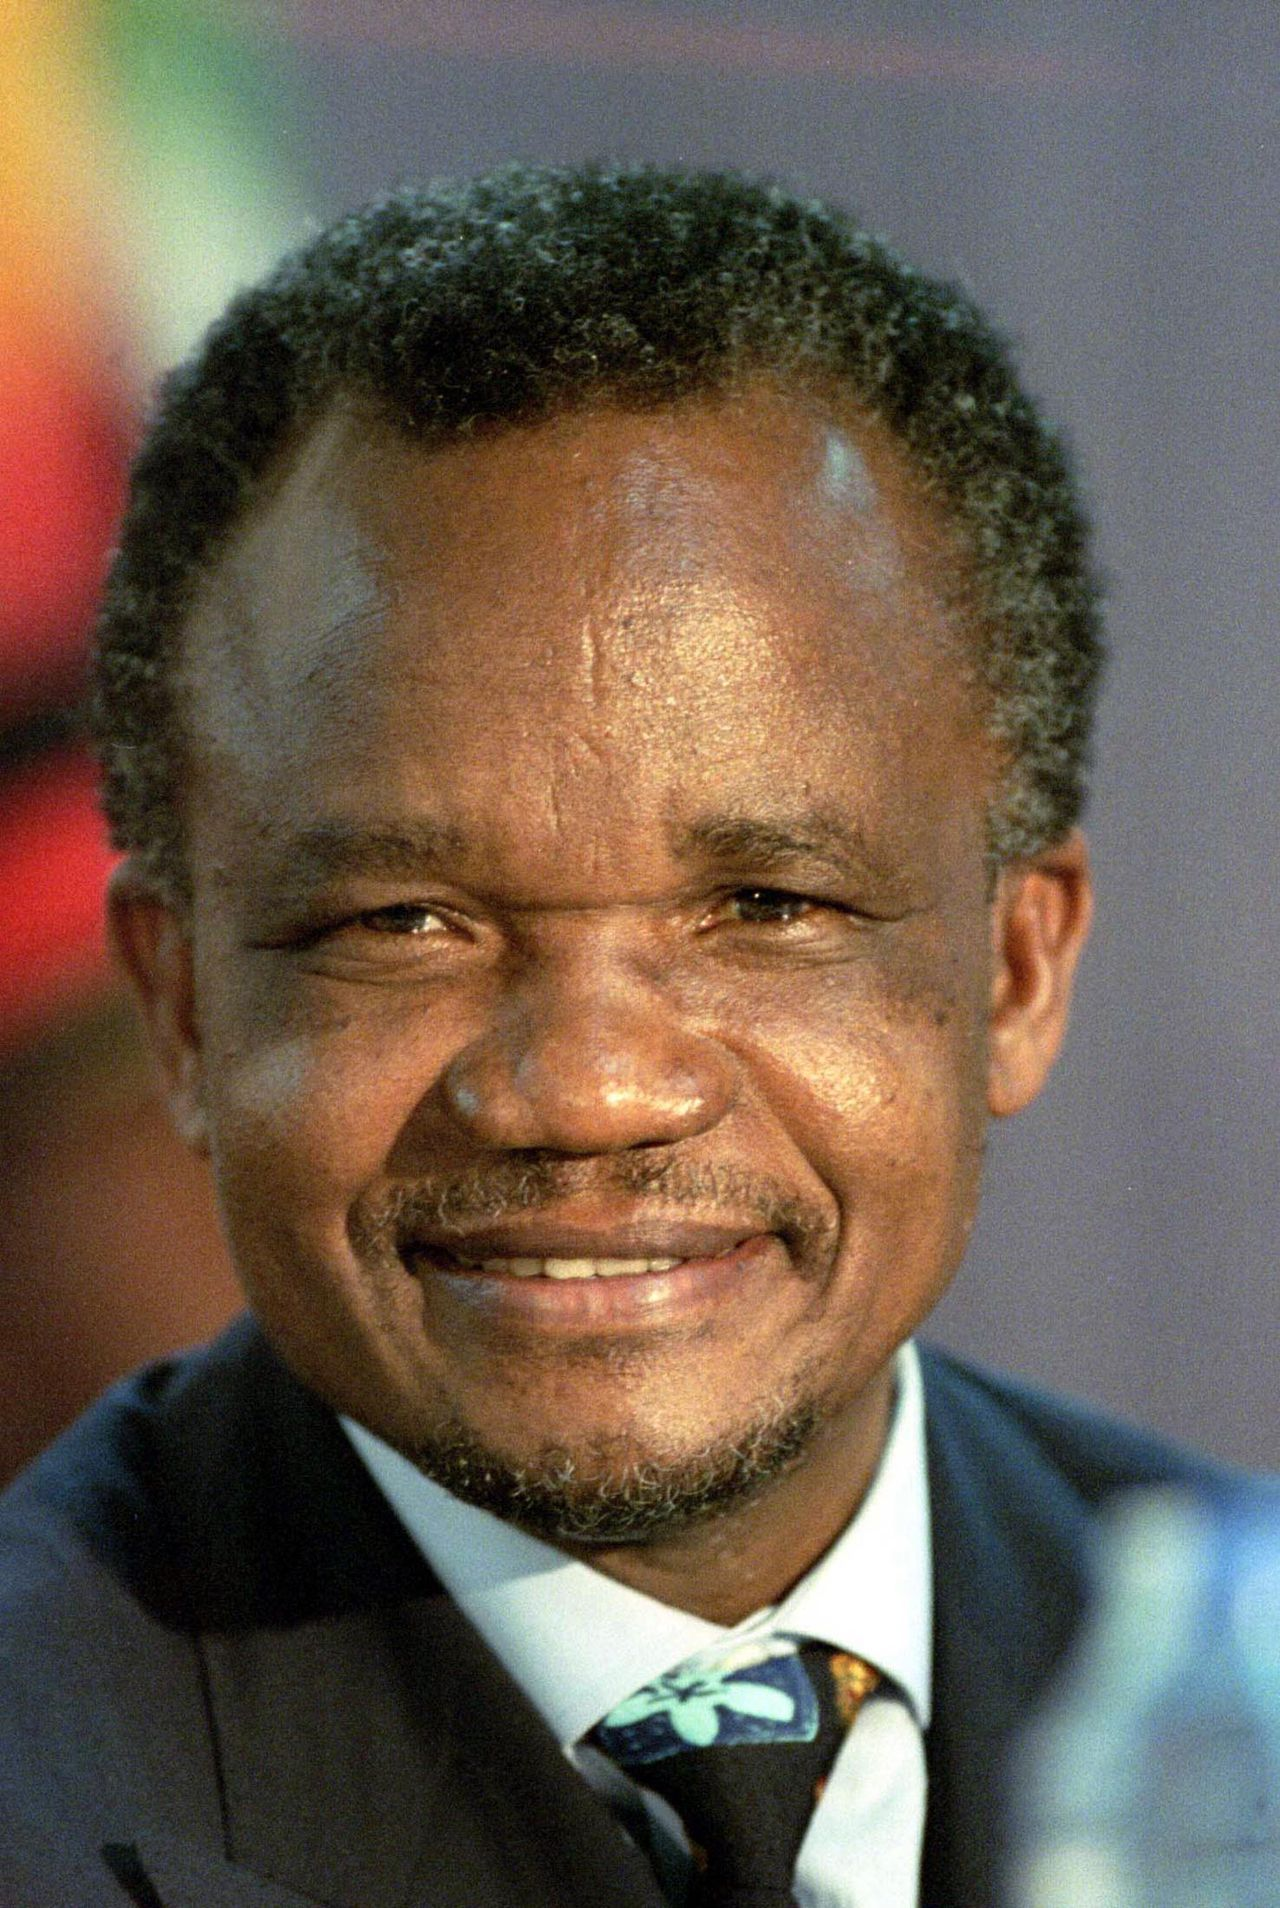 Zambia's President Frederick Chiluba is seen during a news conference at the Southern African Development Cooperation (SADC) in Blantyre, in this file picture taken September 8, 1997. Chiluba, Zambia's first democratically elected president who fought off corruption charges after standing down, has died aged 68, local media reported on June 18, 2011. The cause of death was not immediately clear. REUTERS/Juda Ngwenya (MALAWI - Tags: POLITICS PROFILE HEADSHOT OBITUARY)